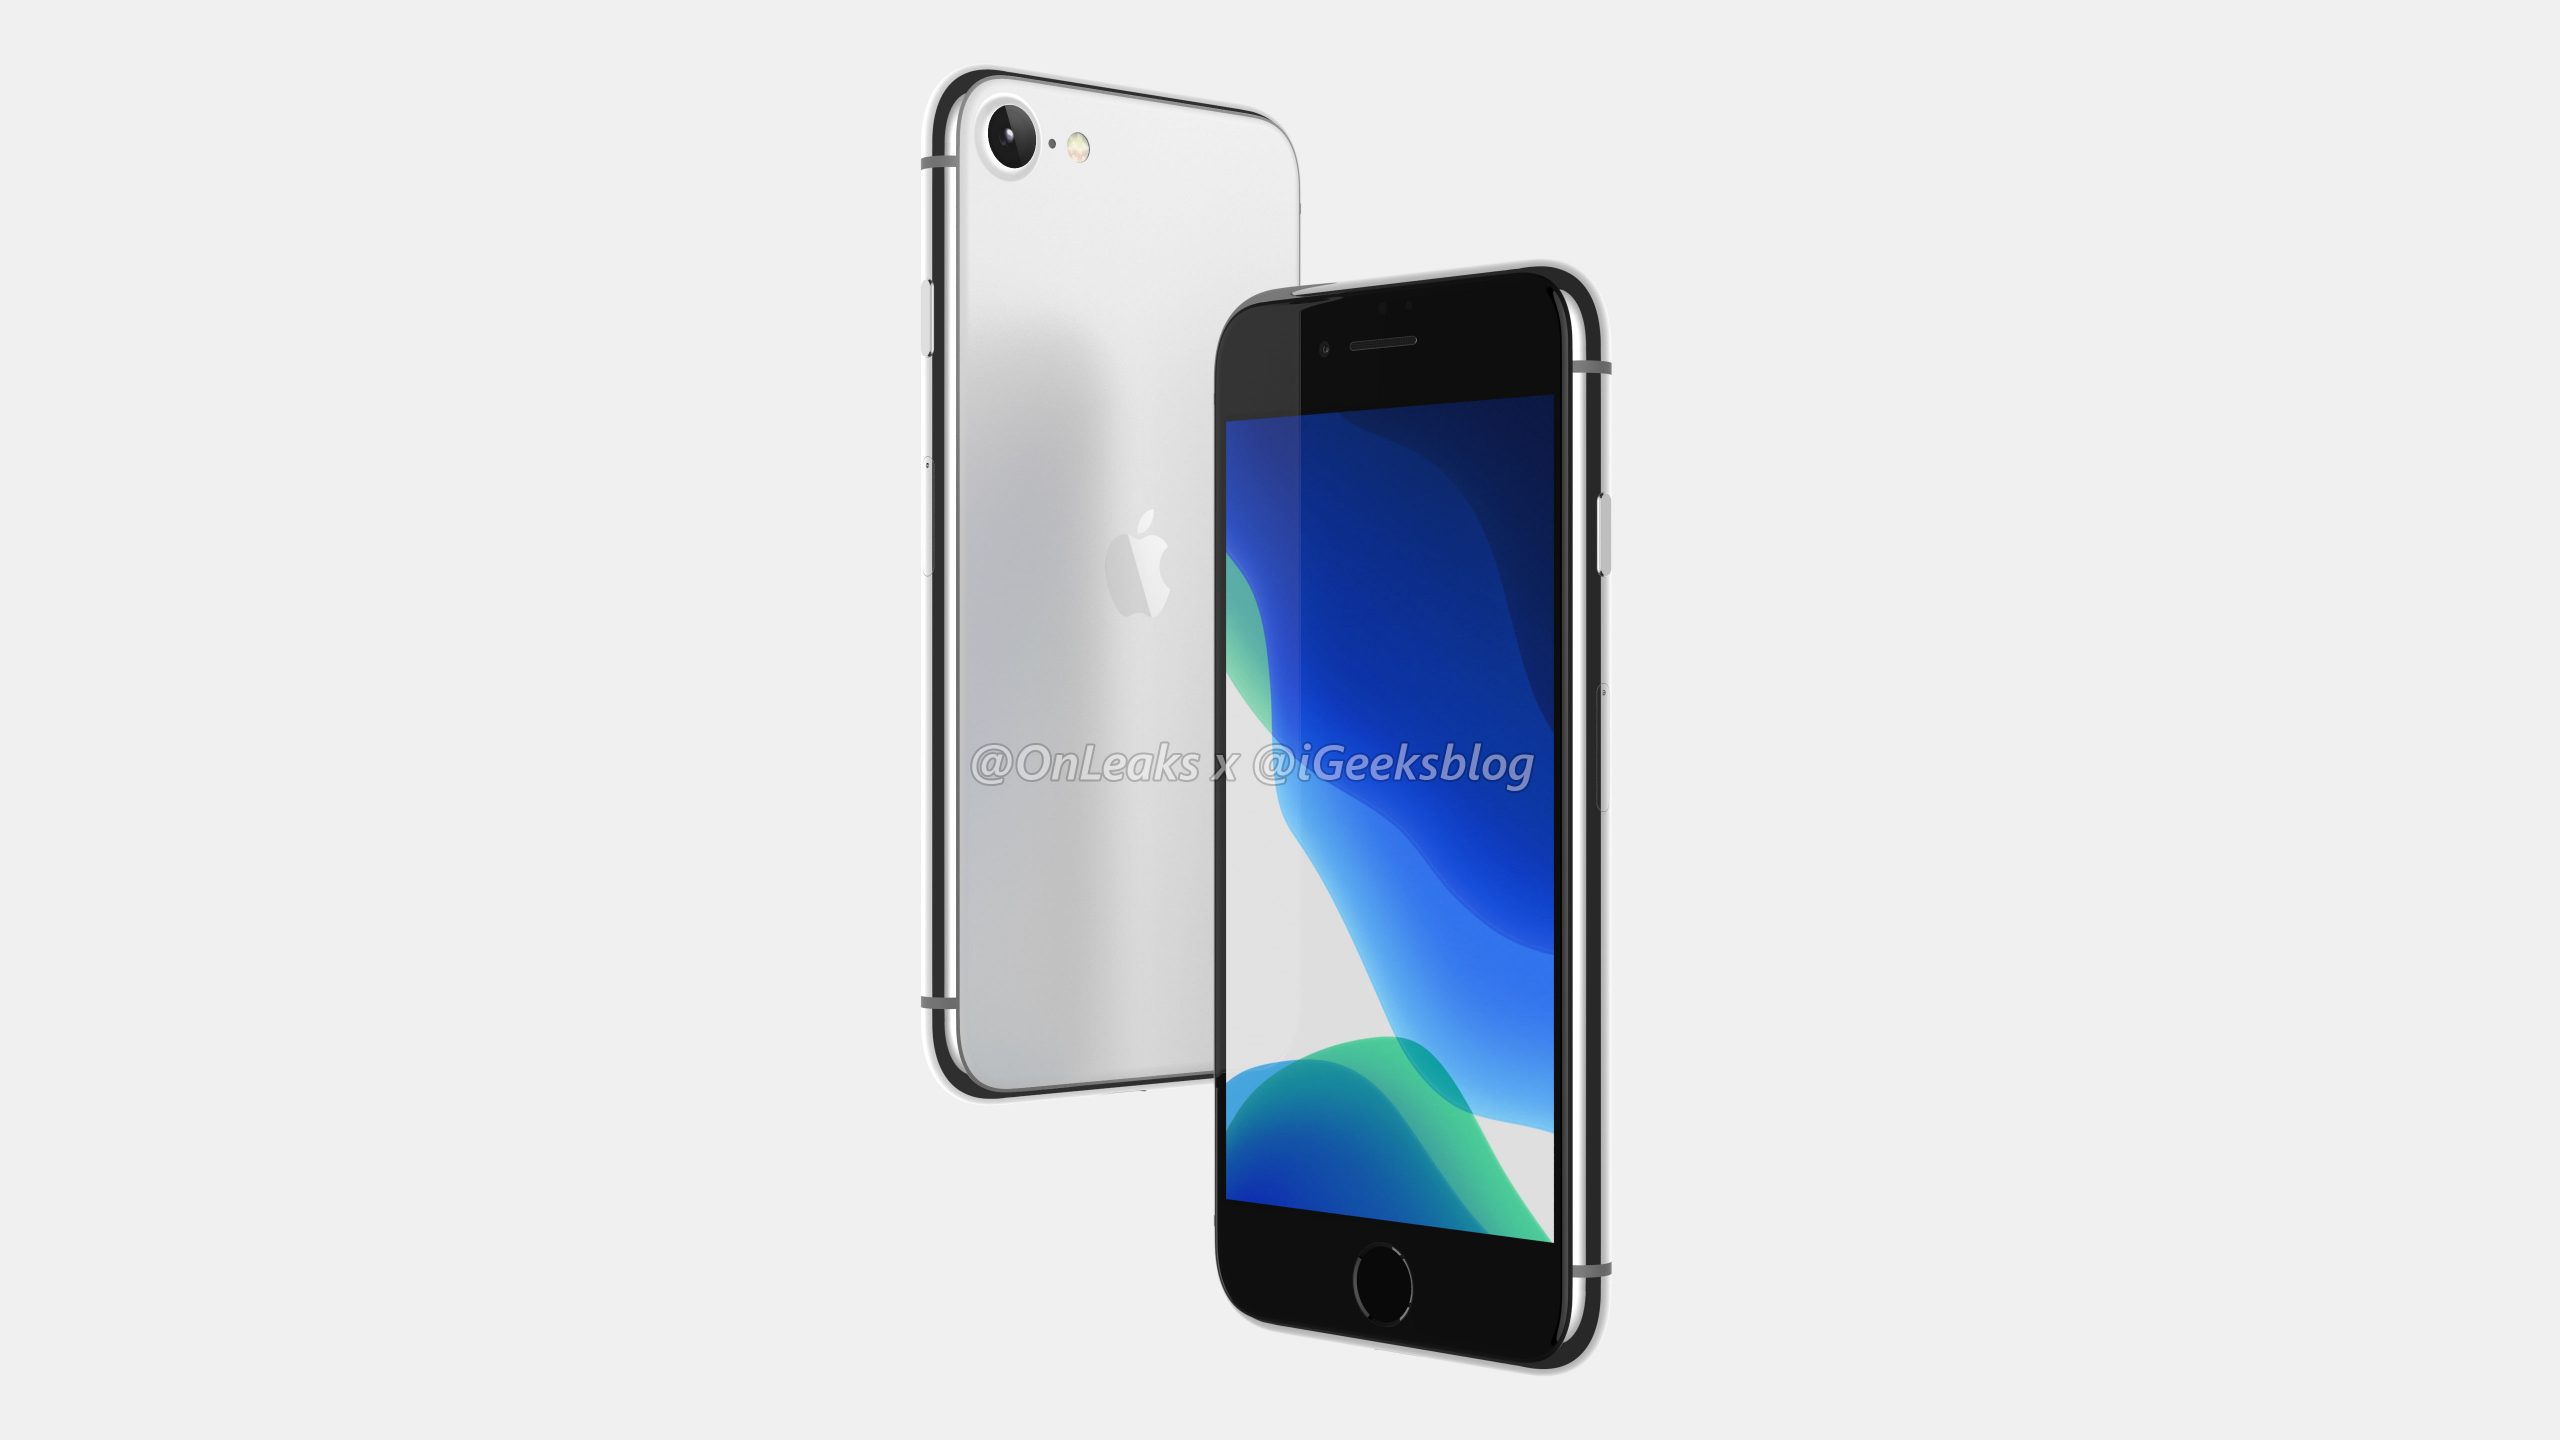 render of 4 7 inch iphone 2020 scaled - Apple iPhone 9: here's the (dated) design of the iPhone SE 2 - Frandroid